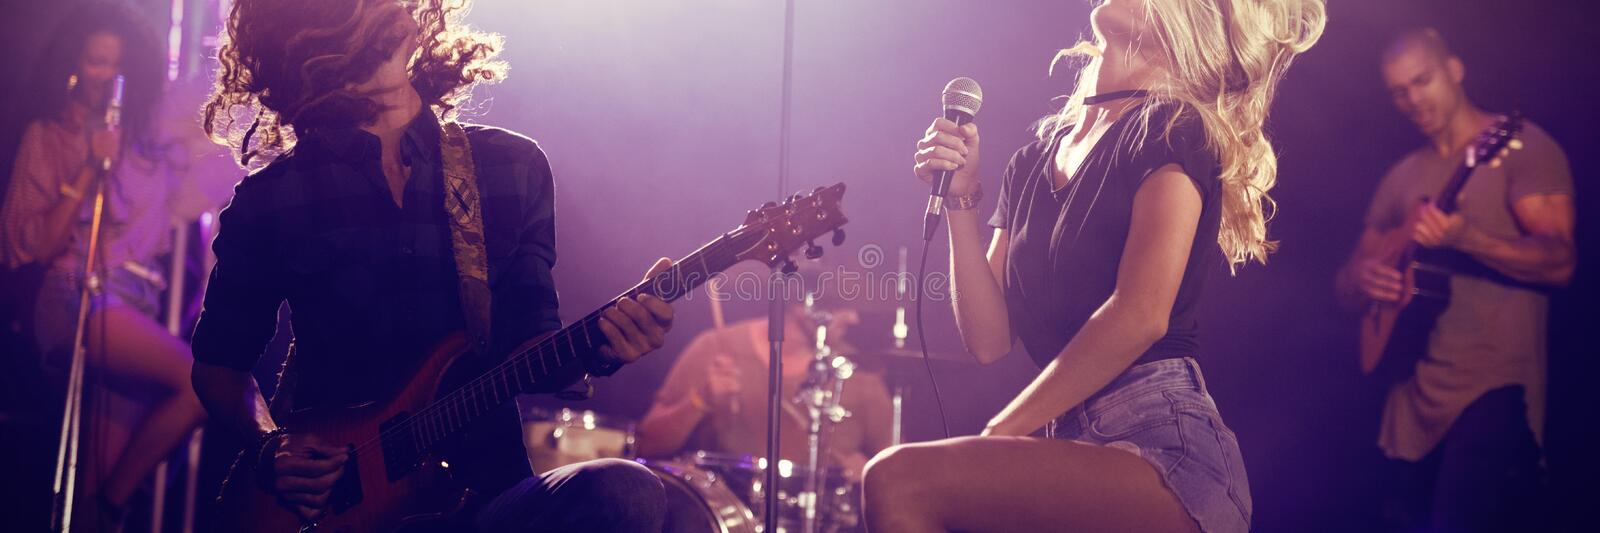 Singer and male guitarist with tousled hair performing at nightclub. Female singer and male guitarist with tousled hair performing together on stage at nightclub royalty free stock photos